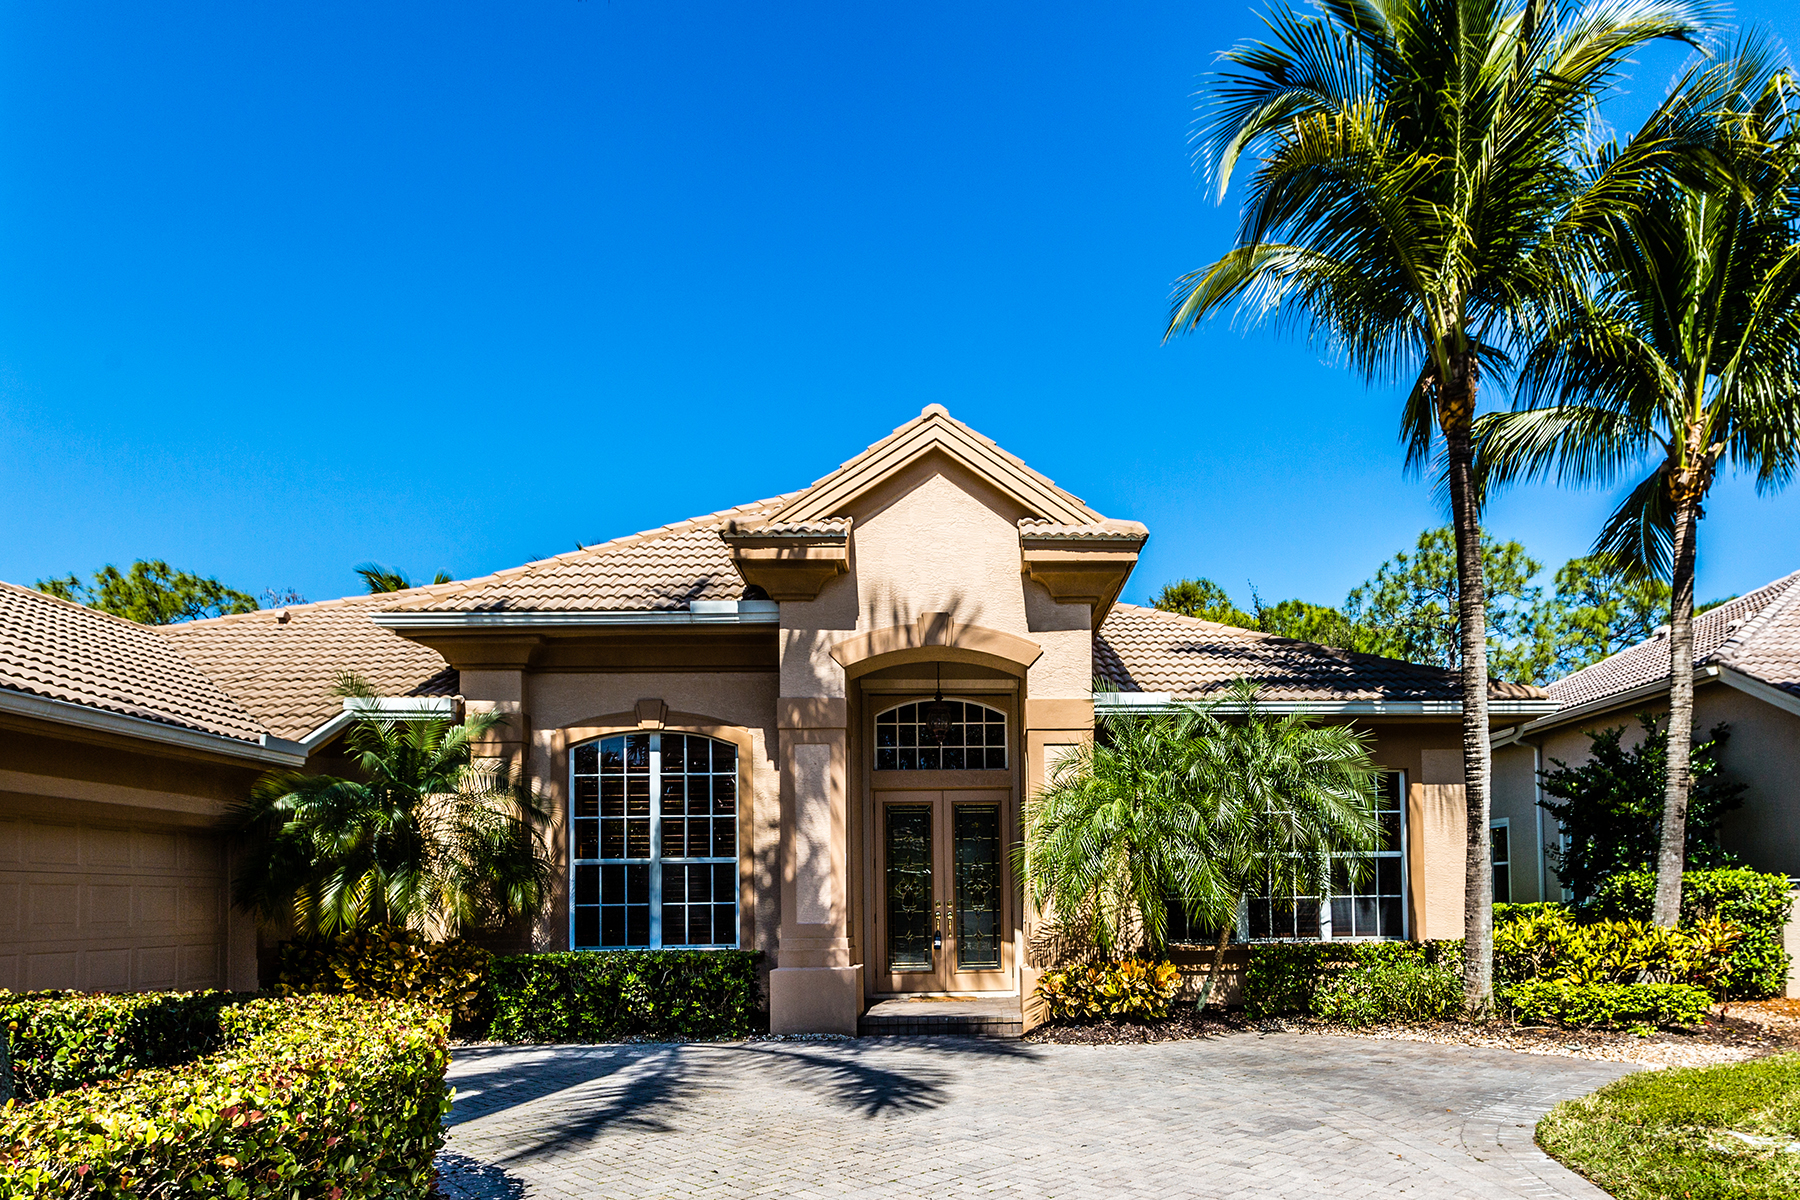 Maison unifamiliale pour l Vente à FIDDLER'S CREEK - MULBERRY ROW 7690 Mulberry Ln Naples, Florida, 34114 États-Unis